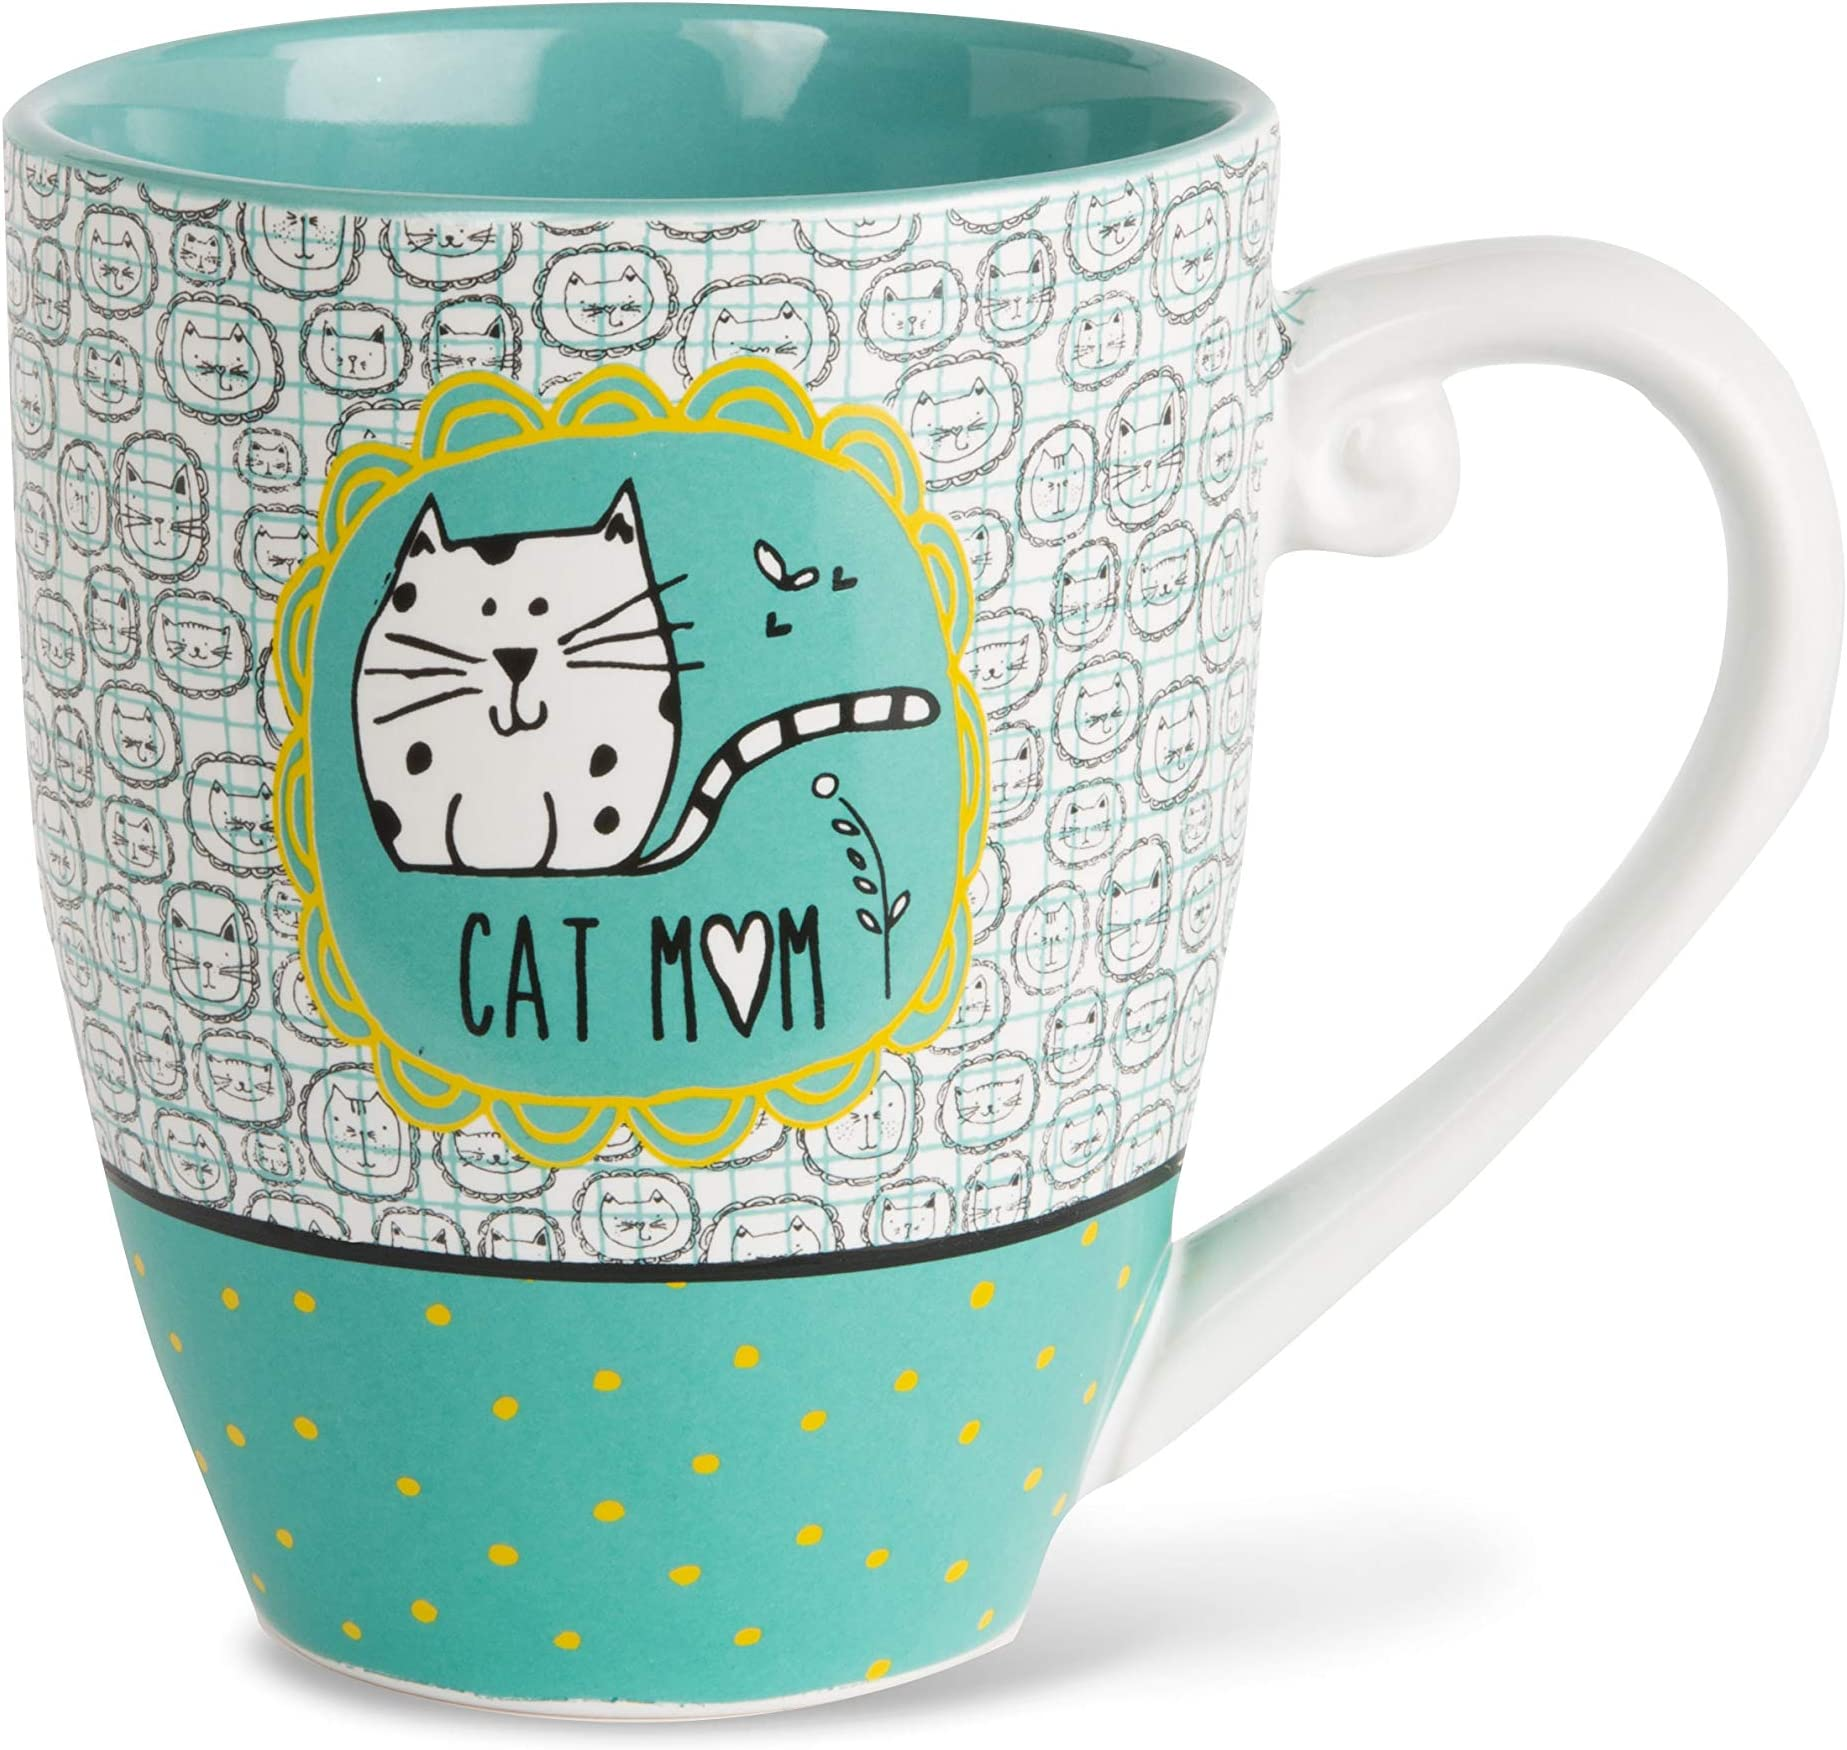 It's Cats & Dogs Cat Mom Ceramic Extra Large Coffee Mug Tea Cup, 20 oz, Teal